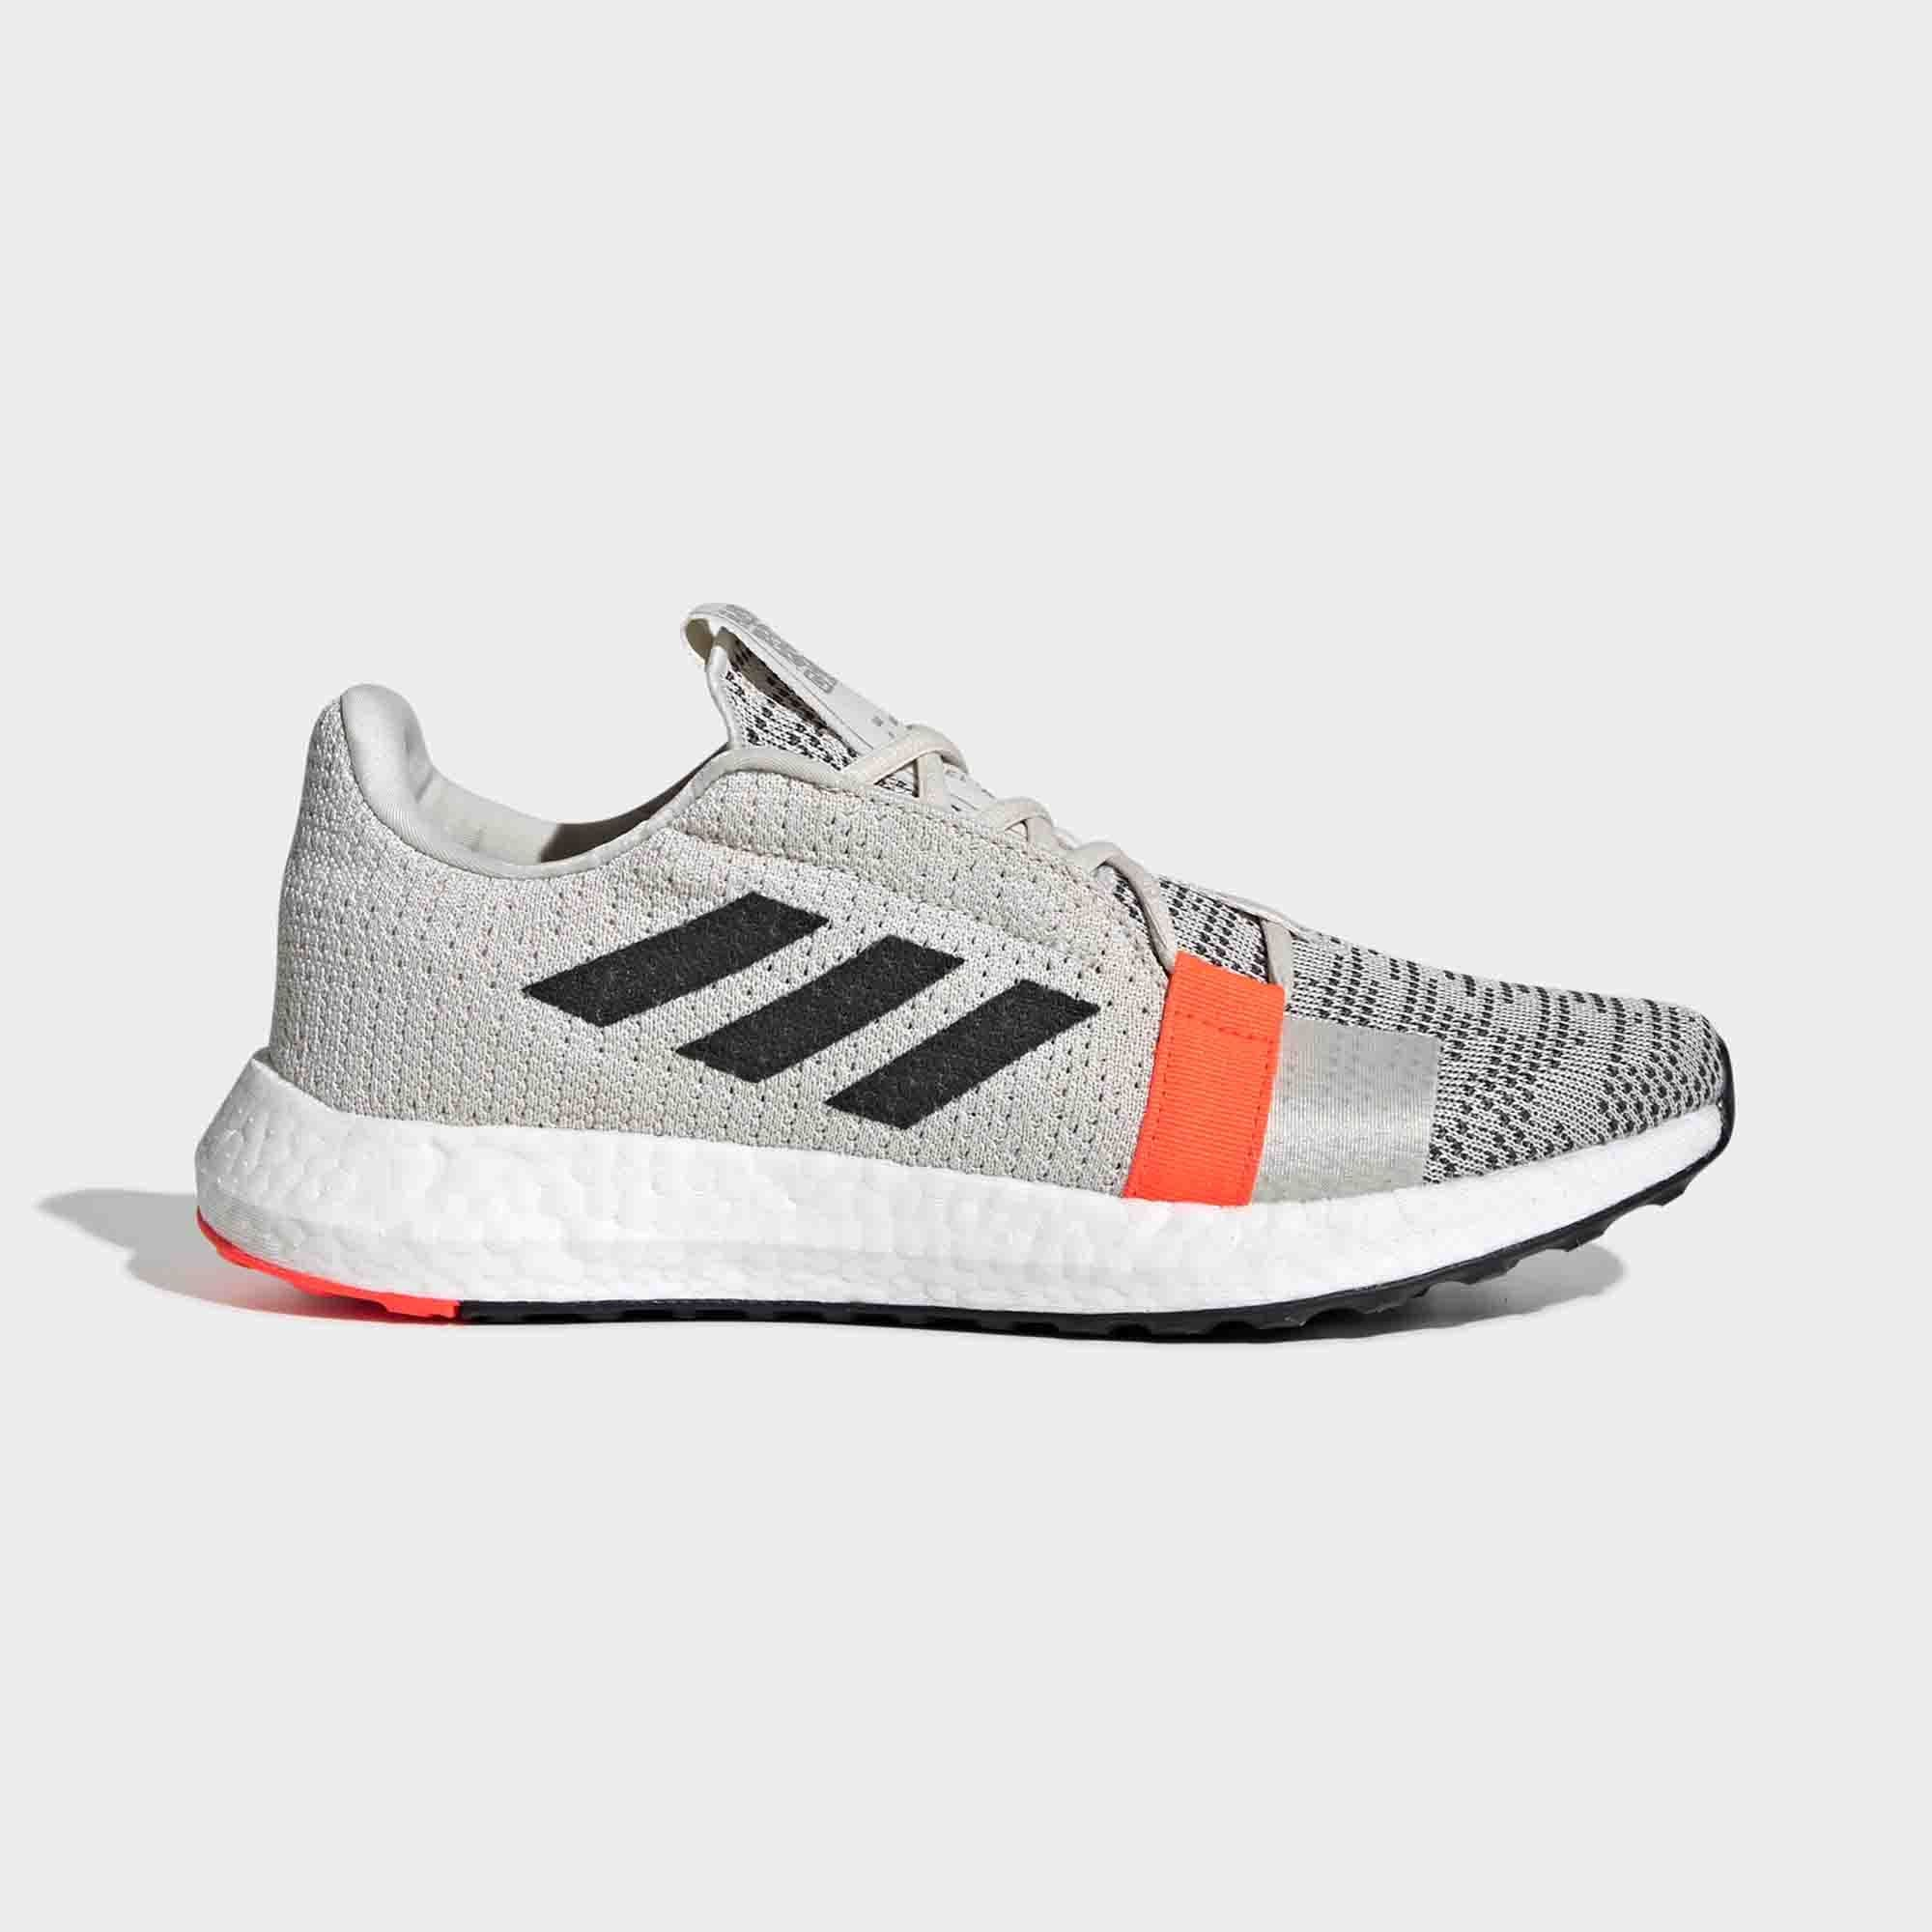 deaaccc1970 Buy adidas Women Senseboost Go Running Shoes Online in Singapore | Royal  Sporting House